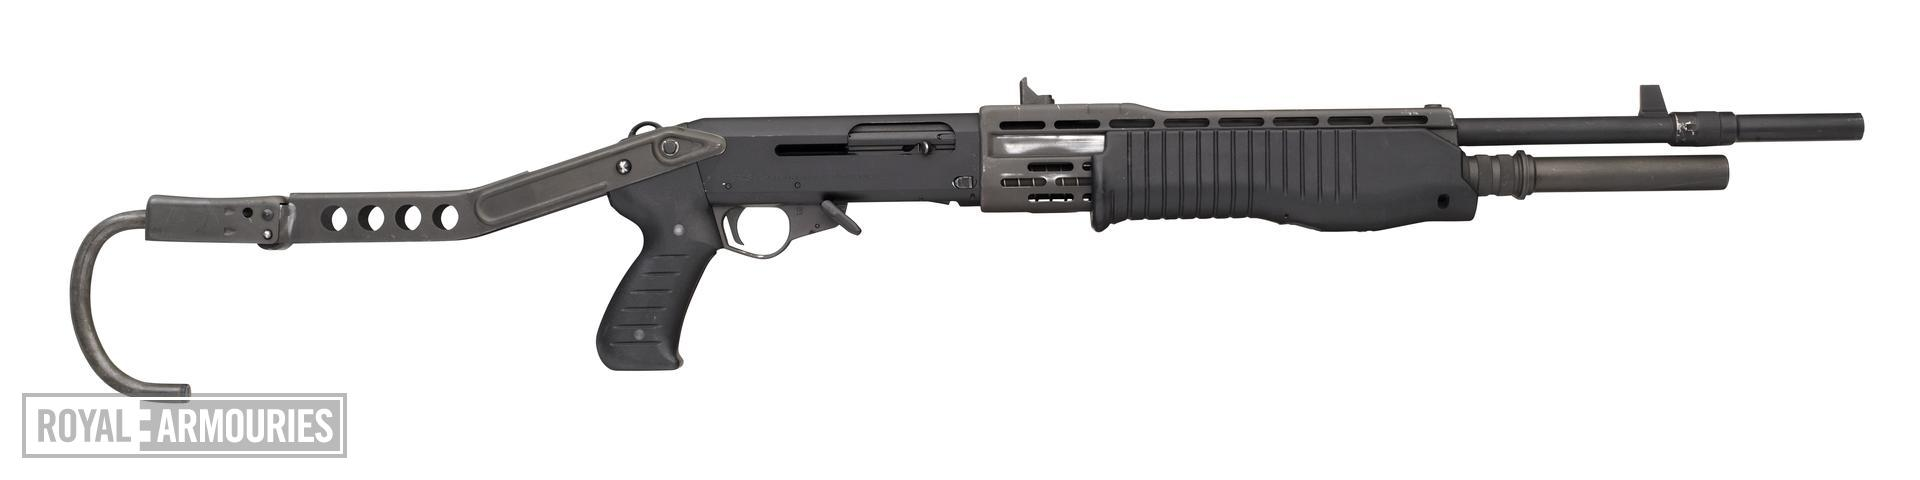 Centrefire self-loading shotgun - Franchi SPAS-12 Can be operated as a pump action or a self loading action shotgun